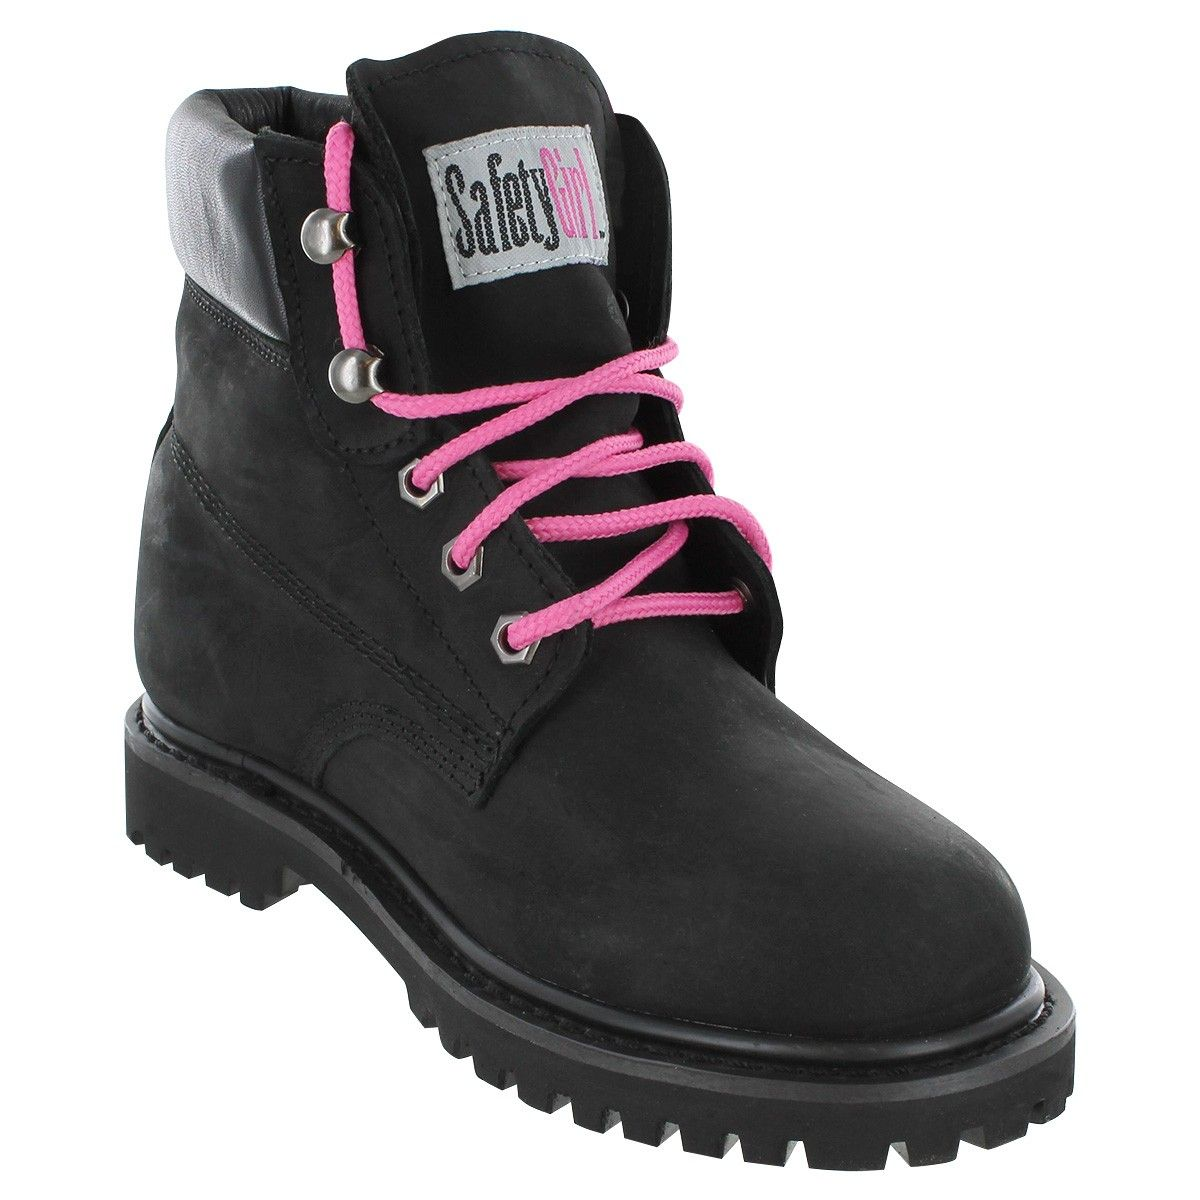 46 00 Safety Girl Ii Soft Toe Waterproof Women S Work